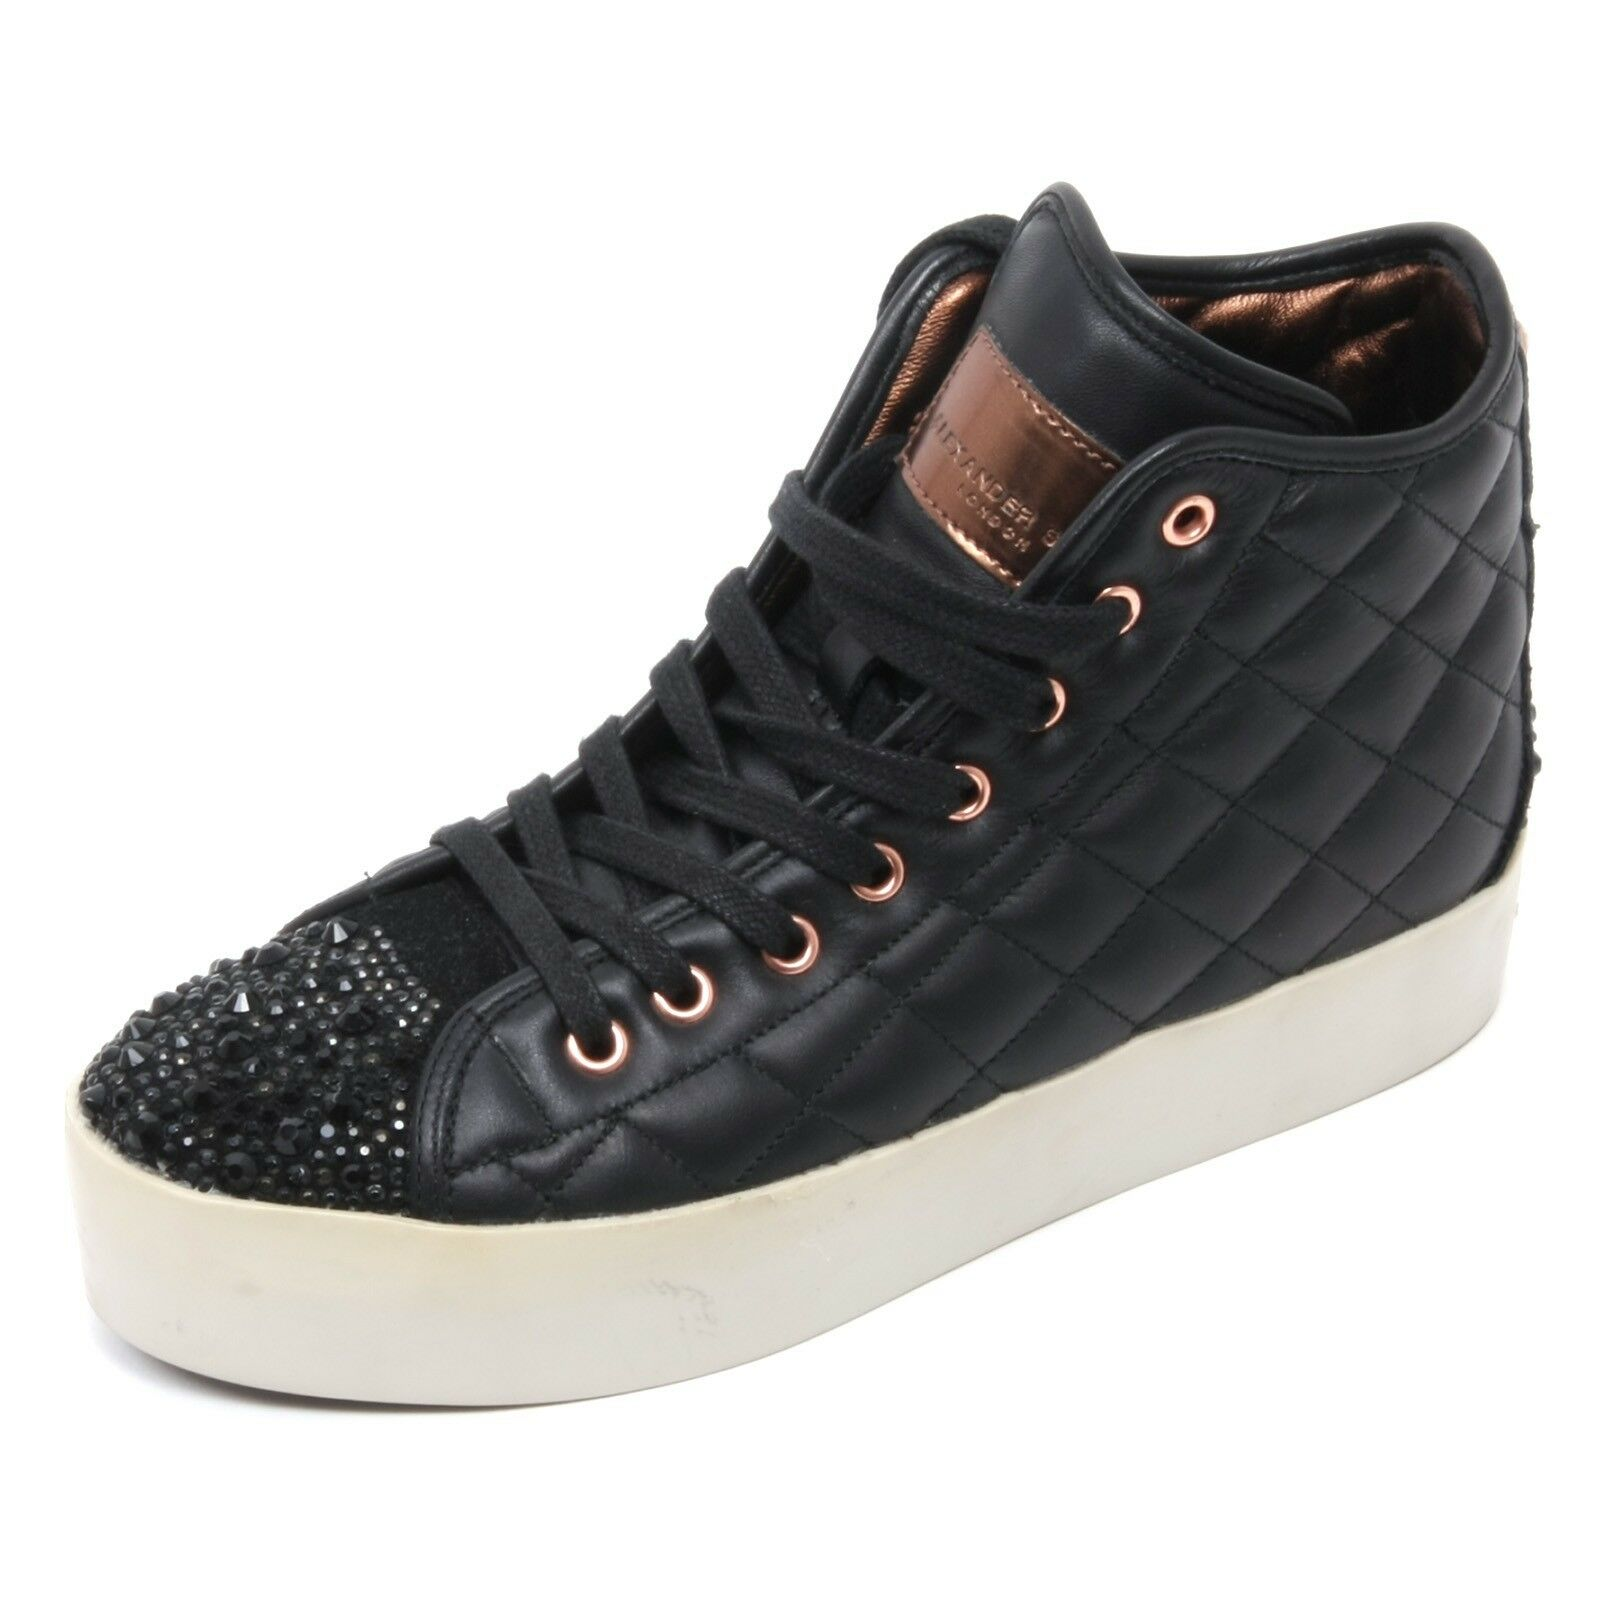 B6686 sneaker alta donna ALEXANDER SMITH LONDON scarpa nero shoe woman